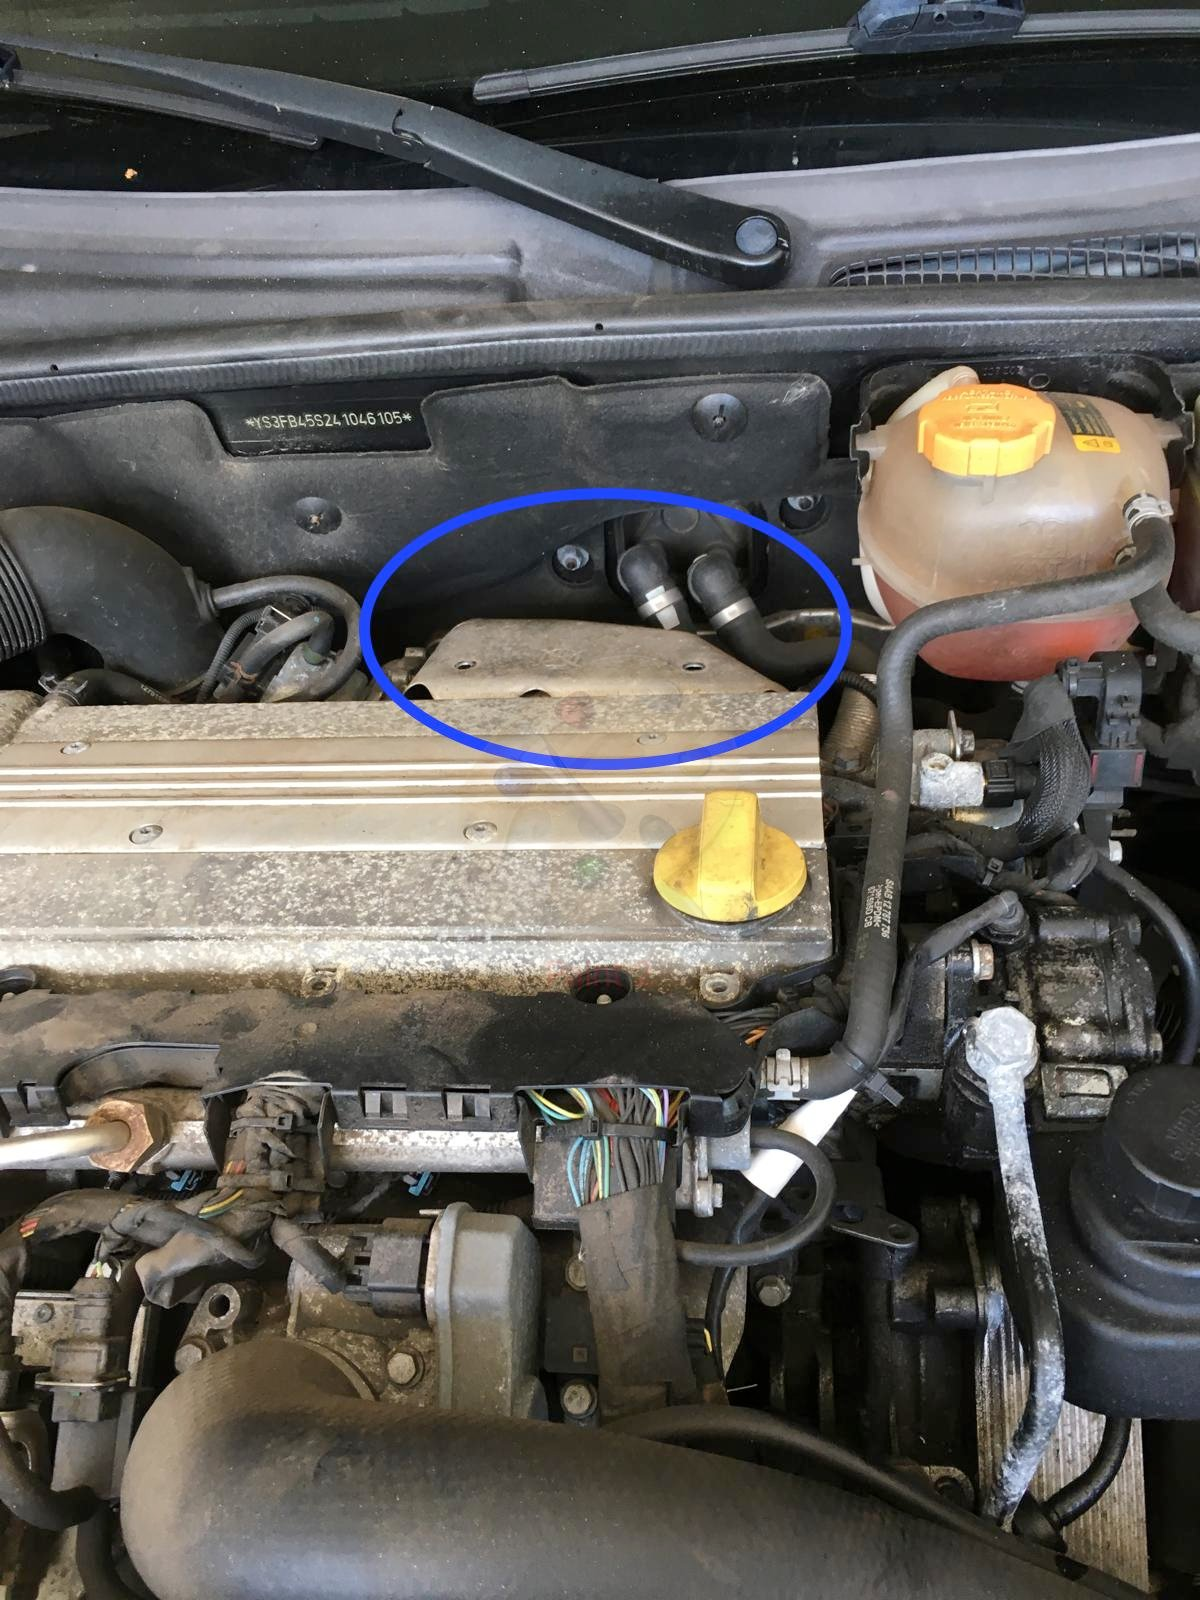 Oil Leak Causing Smell in Cabin | SaabCentral Forums